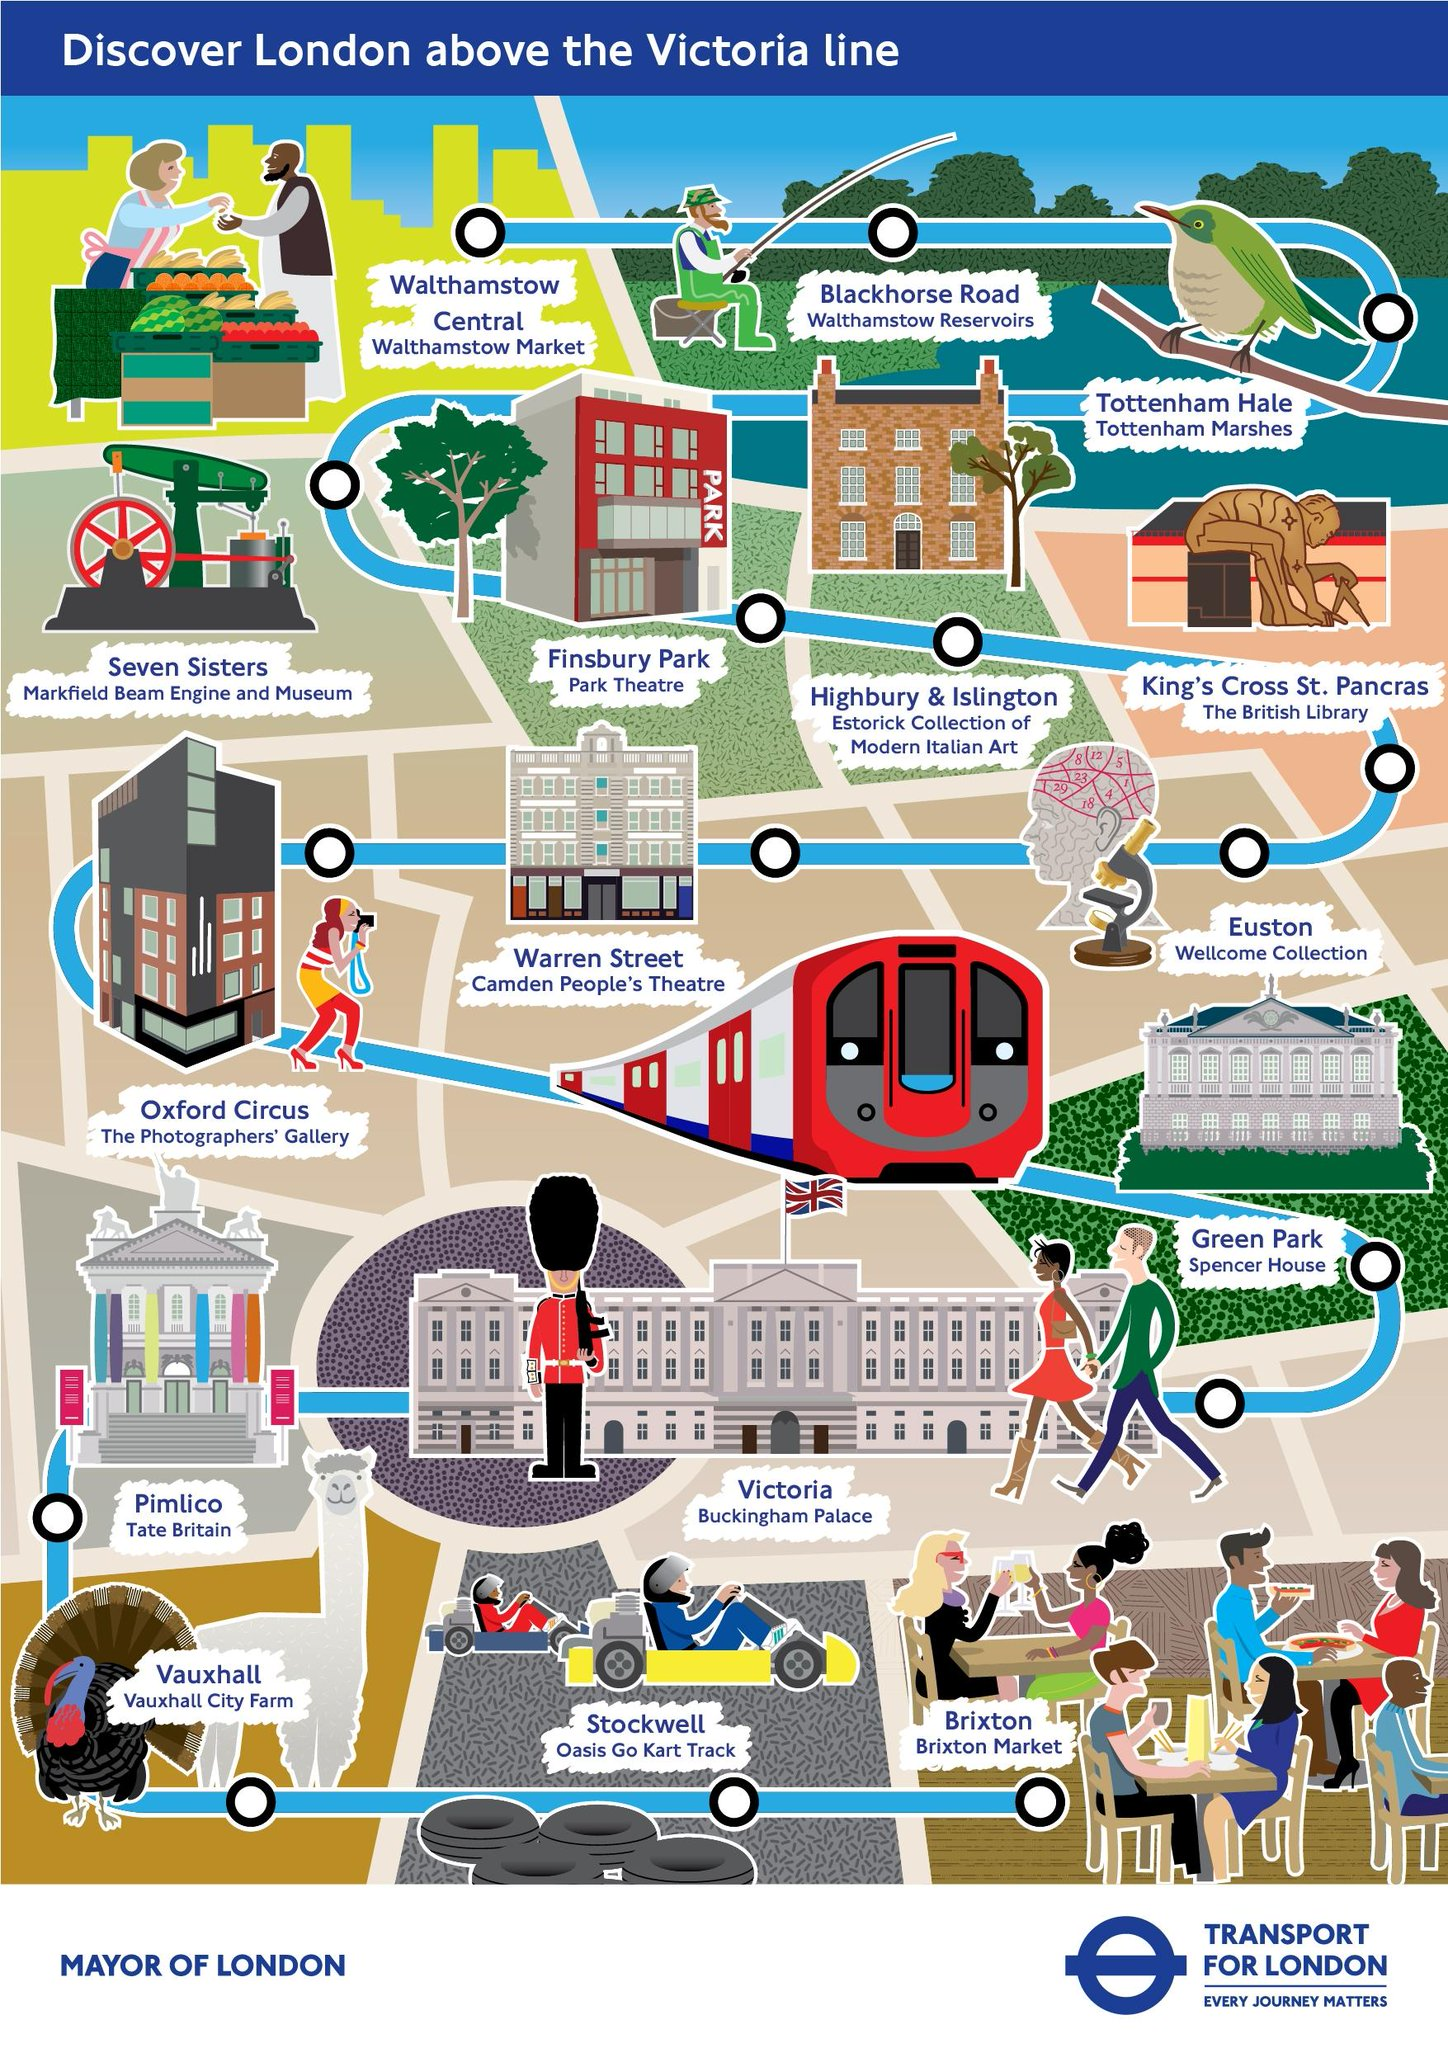 #exploreLondon. Use this new @TfLOfficial infograph to discover lots of interesting stuff along the #VictoriaLine http://t.co/Br4Y3Gg8Et